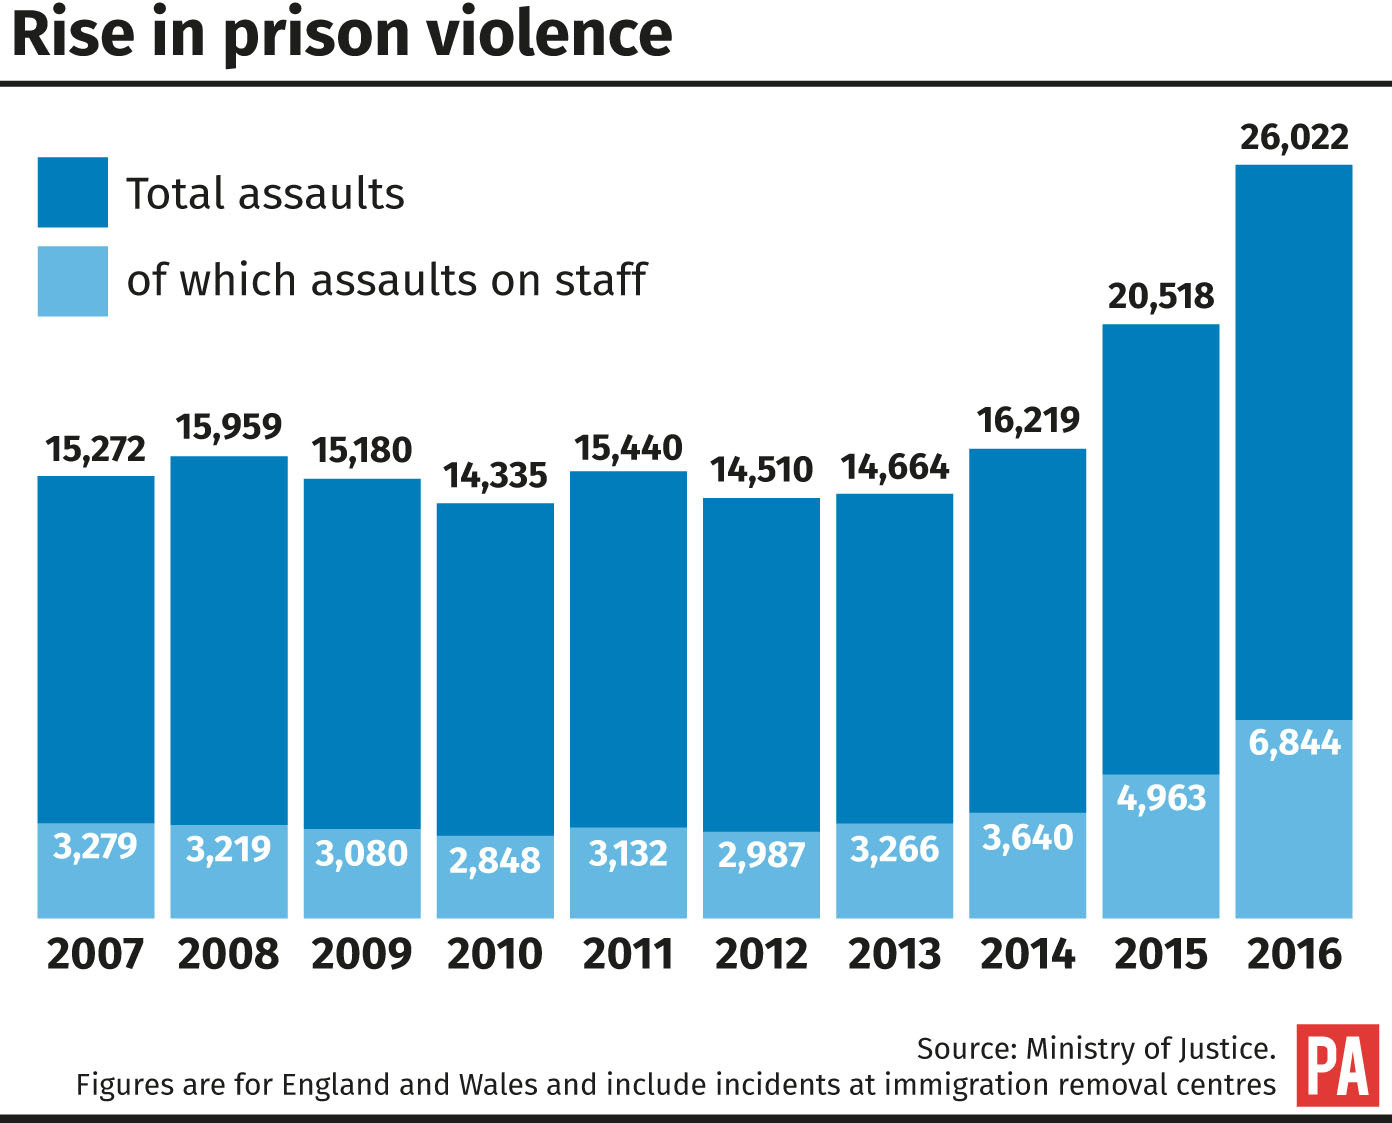 prison overcrwoding in america and england What is causing prison overcrowding findings continued increase in the number of offenders sent to prison high recidivism rate high rate of offenders returned to prison for violating or unsuccessfully completing community.